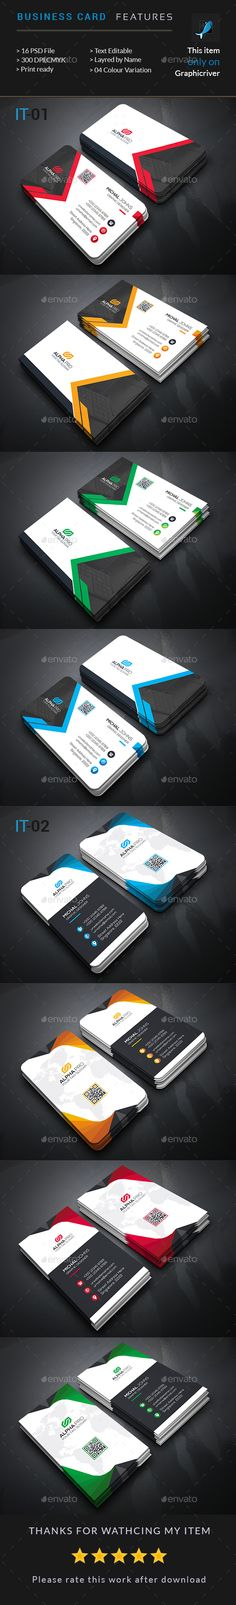 Corporate Business Card Templates PSD Bundle. Download here: https://graphicriver.net/item/corporate-business-card-bundle-2-in-1/17463896?ref=ksioks